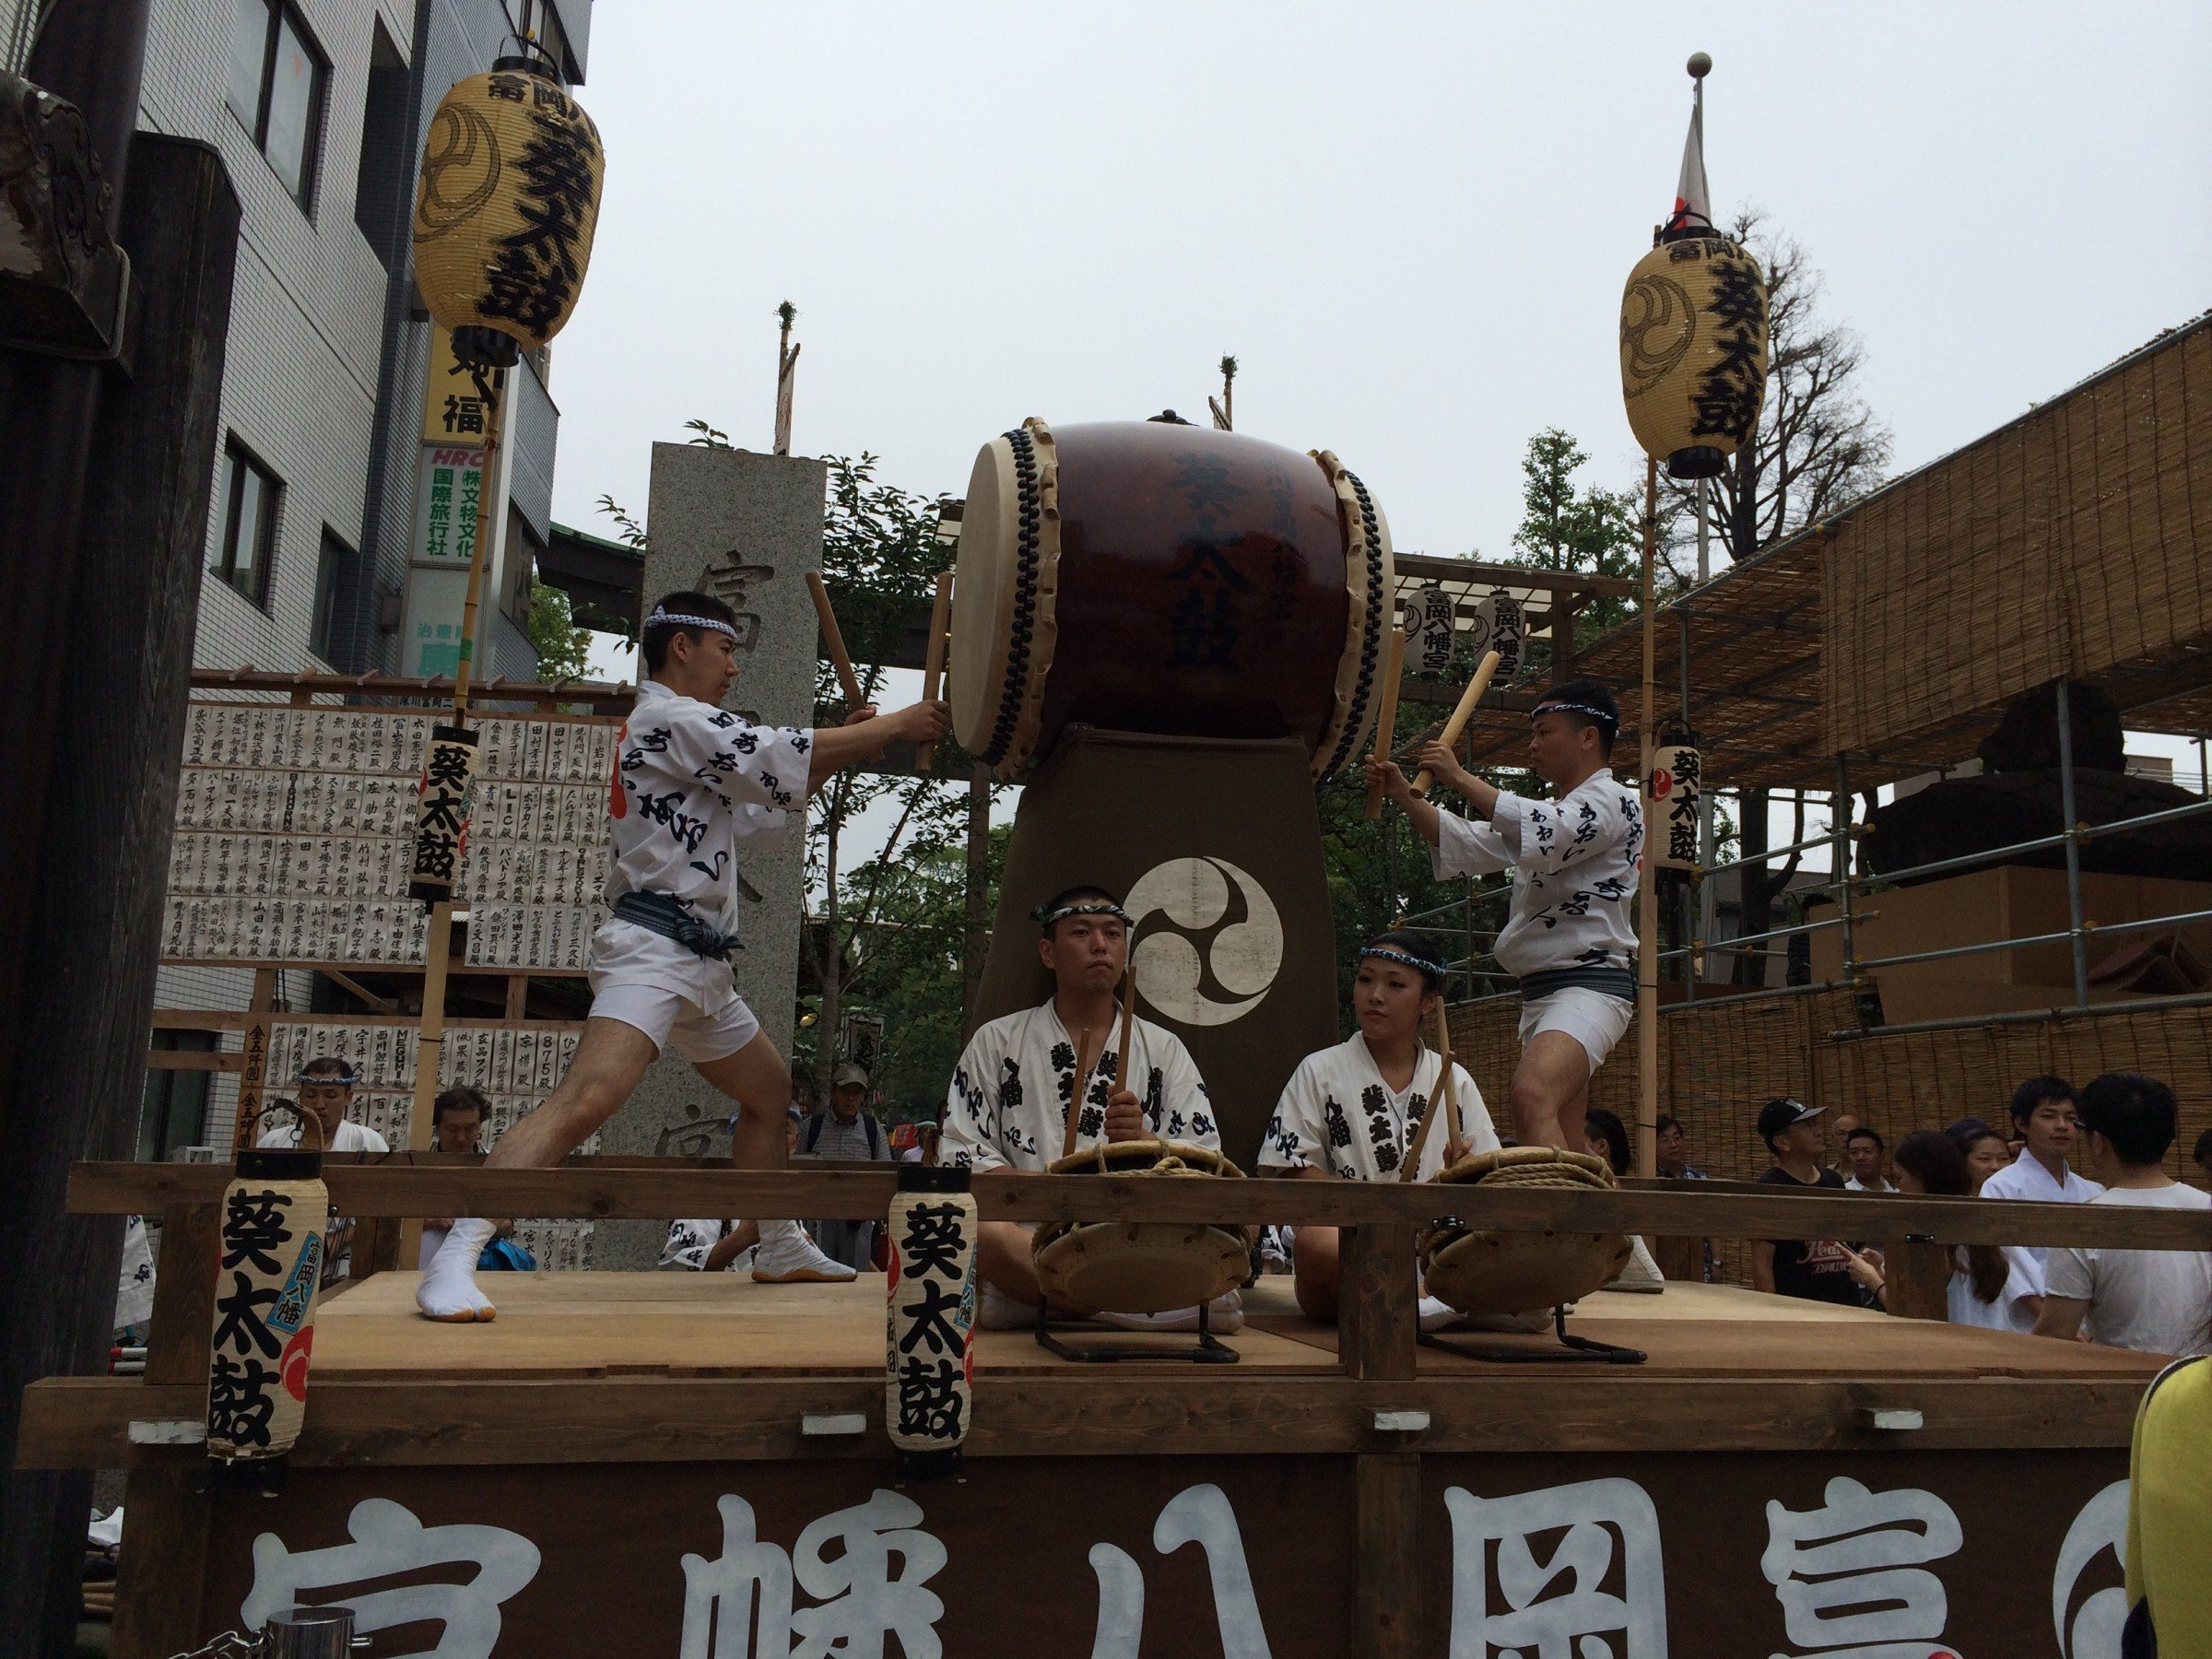 Taiko drummers at one of many stations along the festival route.